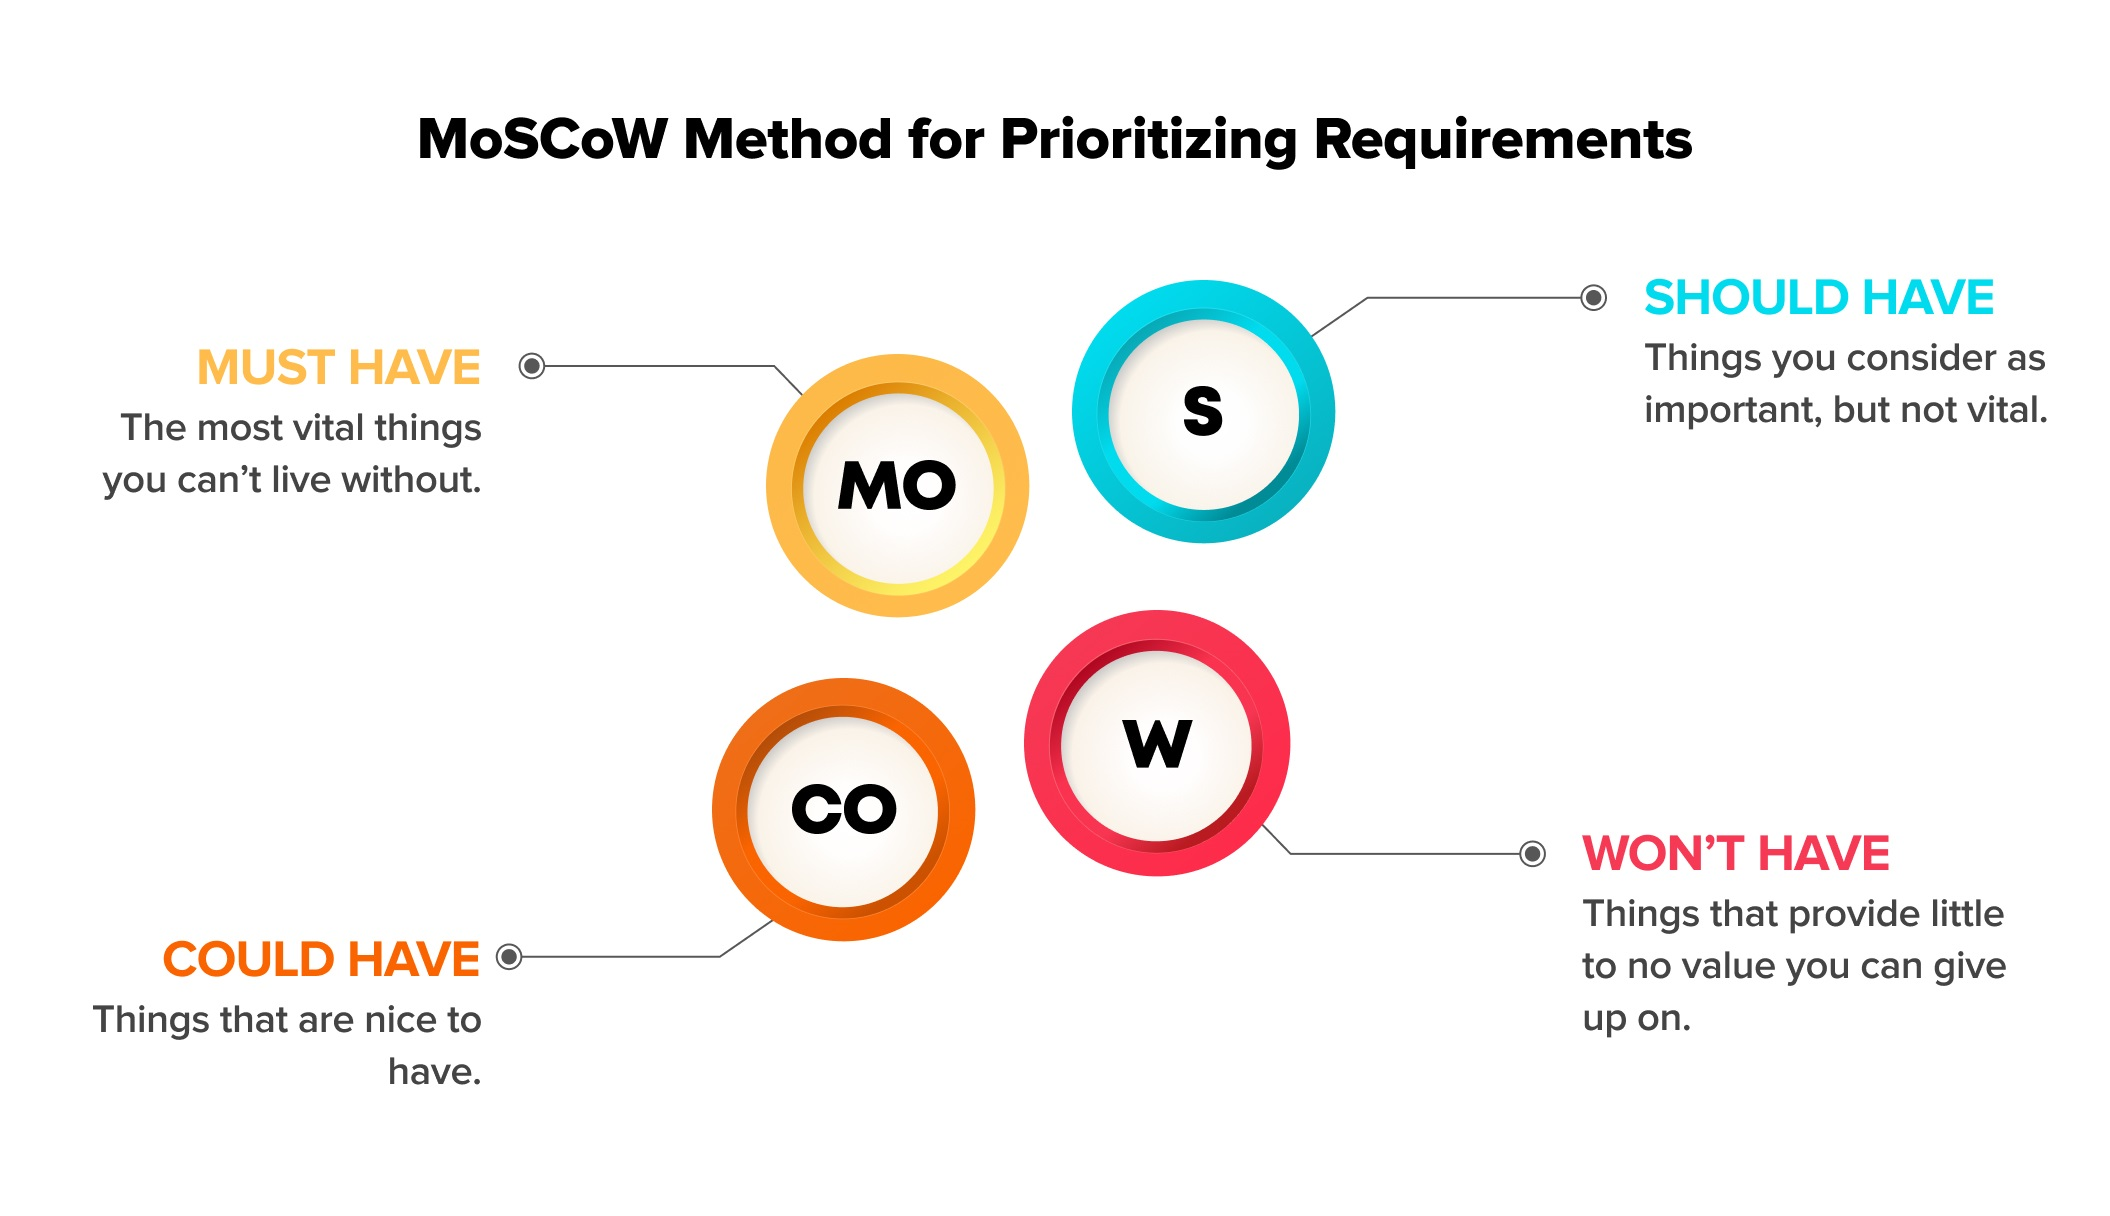 The MoSCoW method includes four parameters on which you should analyze and prioritize business requirements